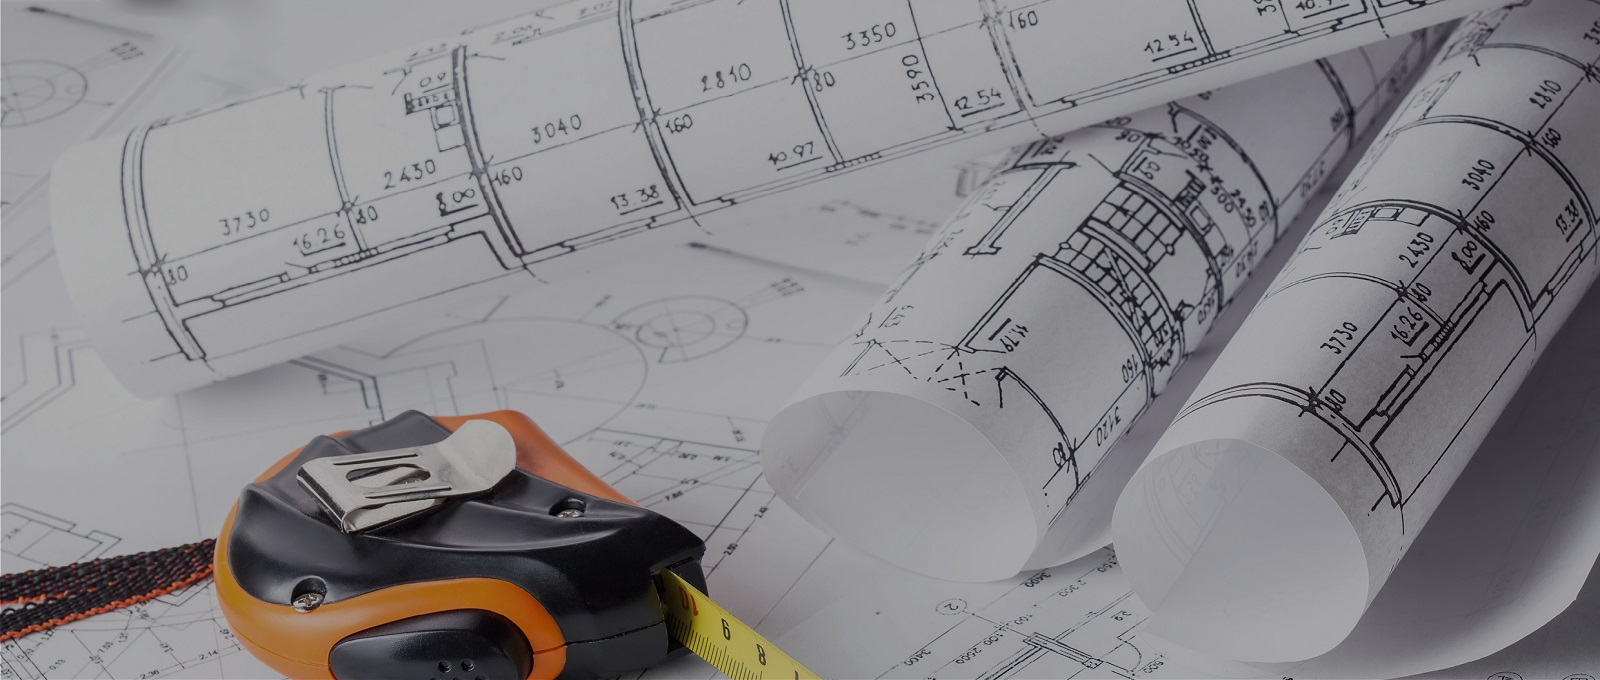 OUR TEAM OF QUALIFIED AUTOCAD DESIGNERS ARE HERE TO PROVIDE YOU WITH CUSTOMISED DESIGNS